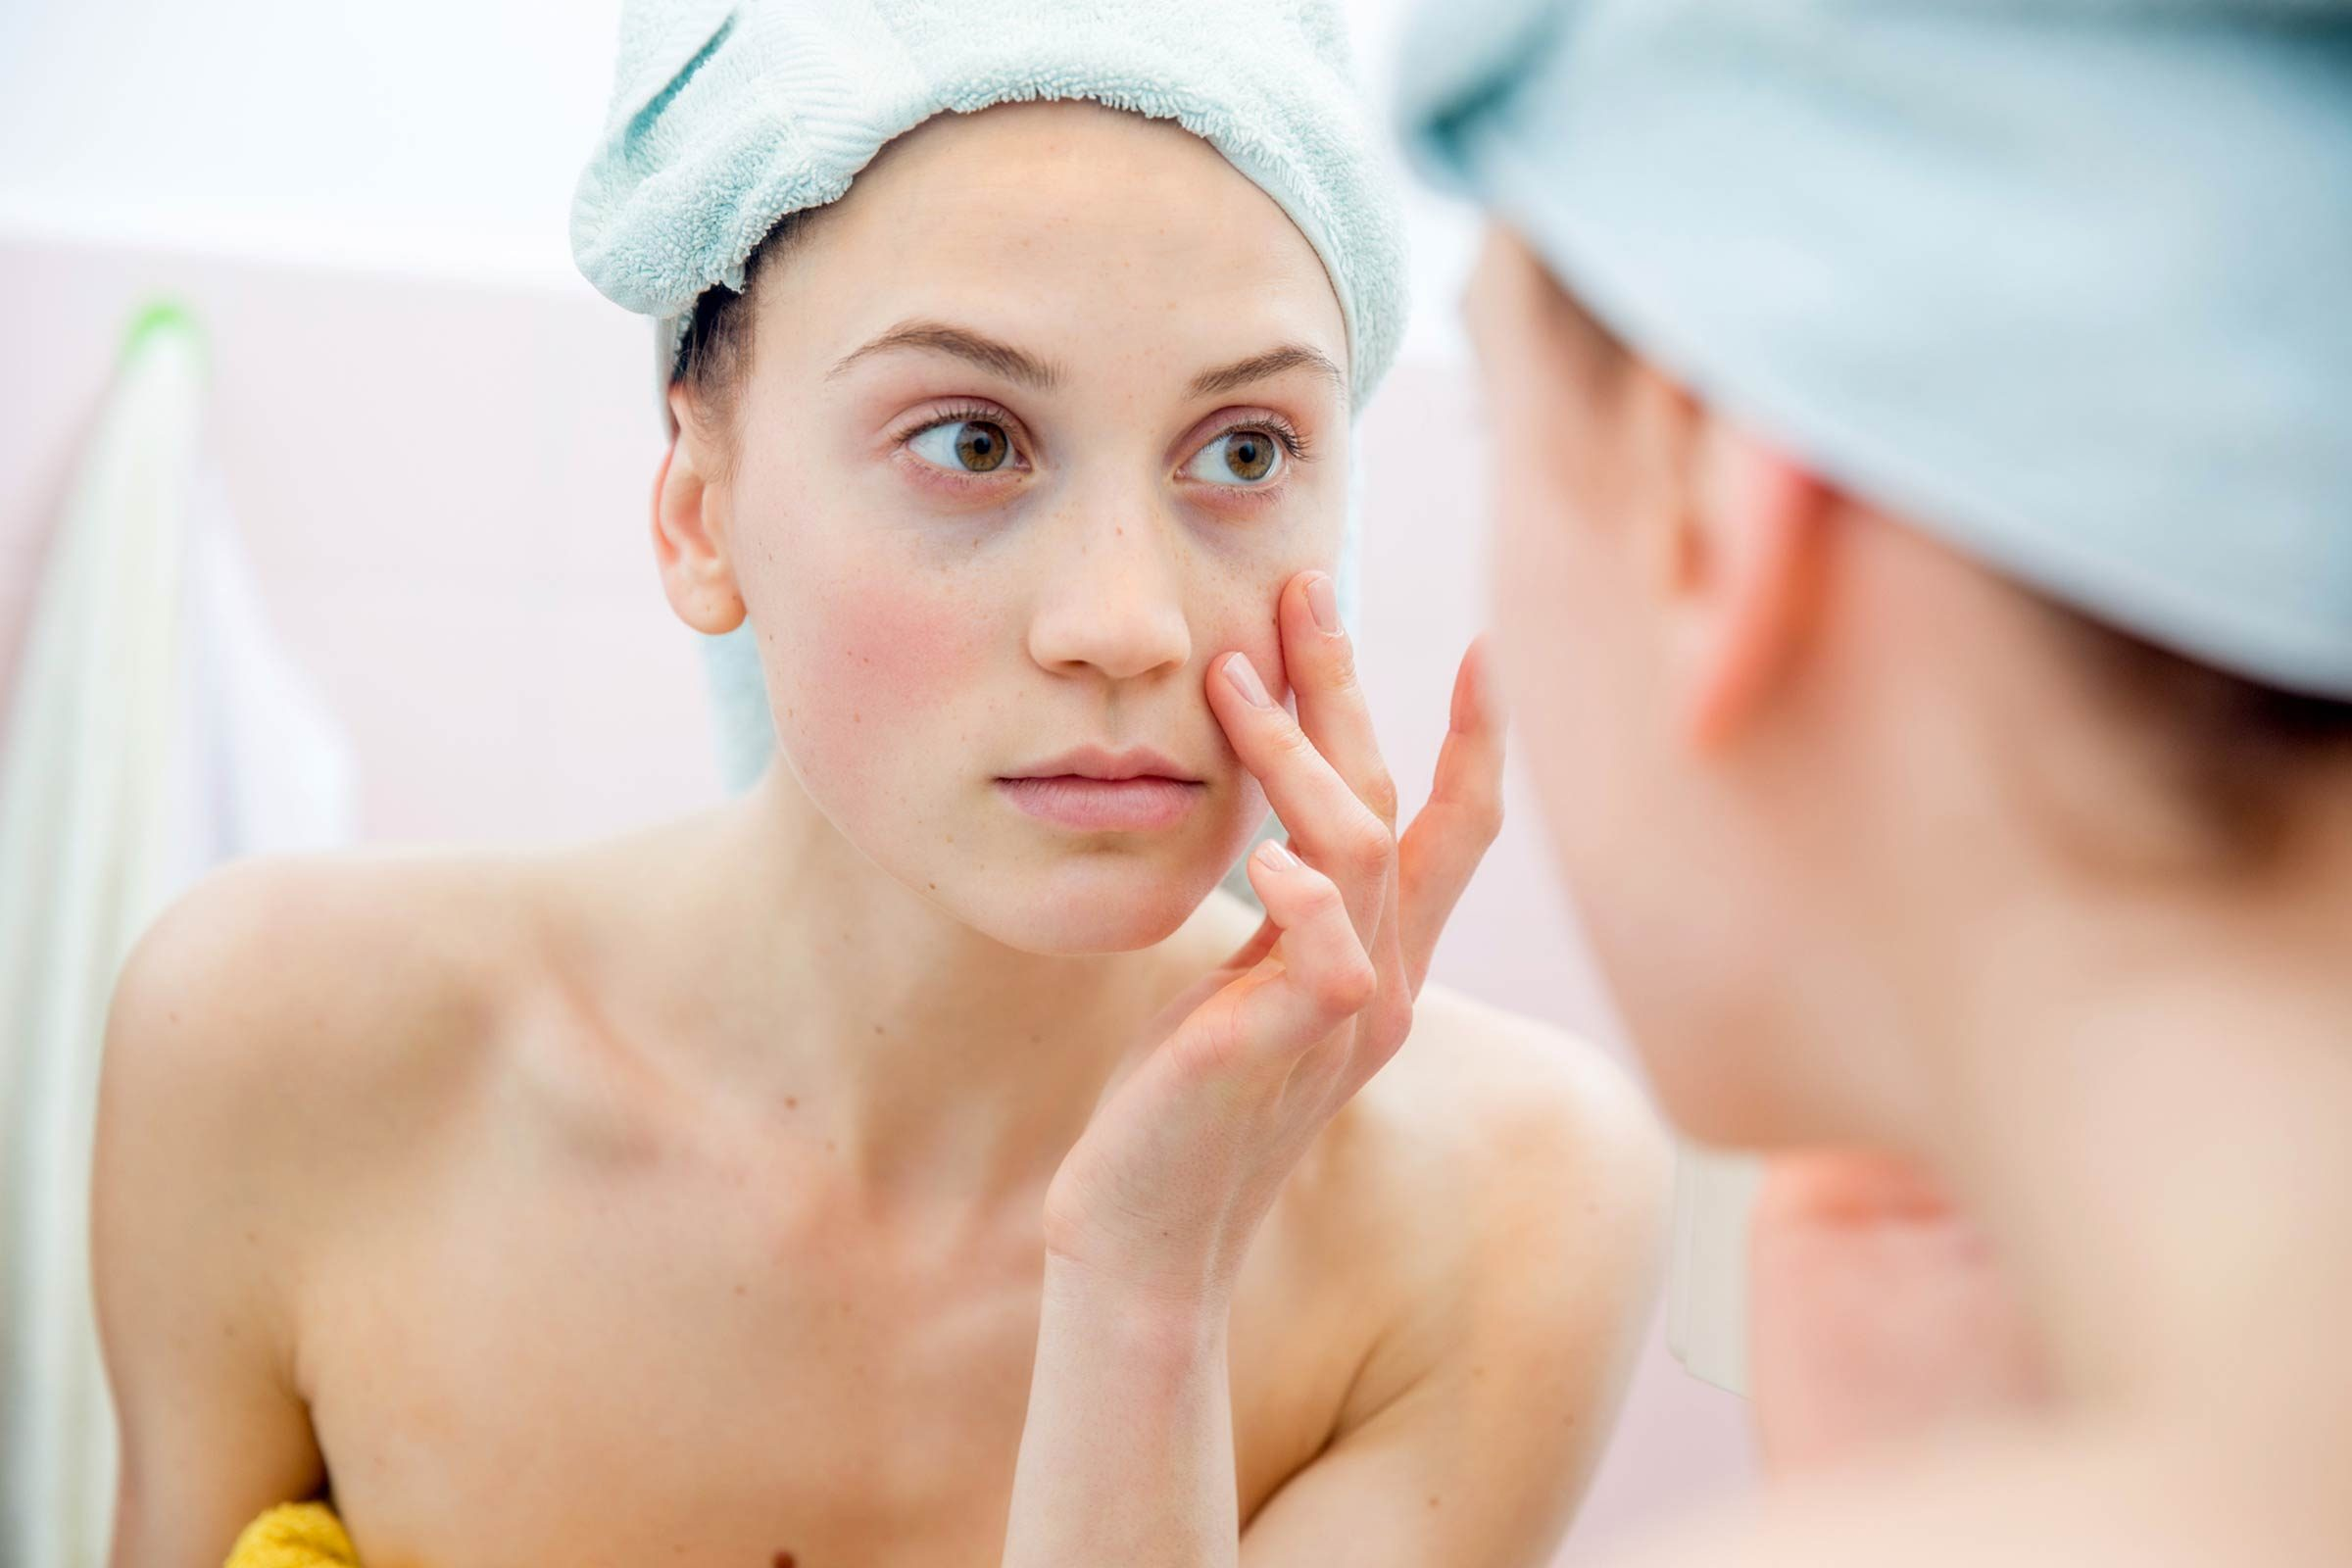 Woman going through her skin-care routine